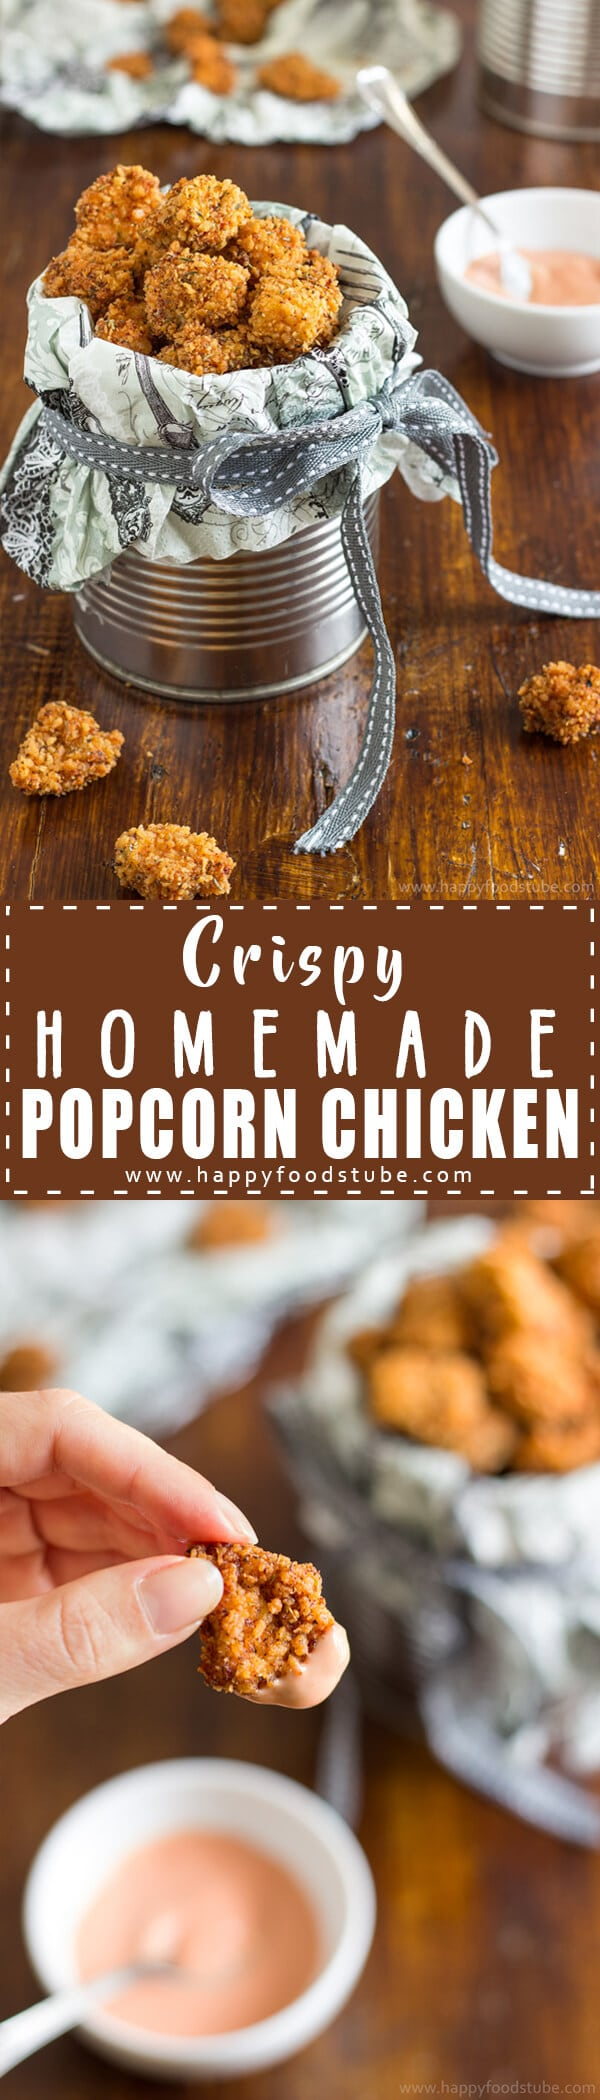 Crispy Homemade Popcorn Chicken - Easy recipe for this popular and delicious snack. Chicken pieces coated in breadcrumbs & served with yummy dip